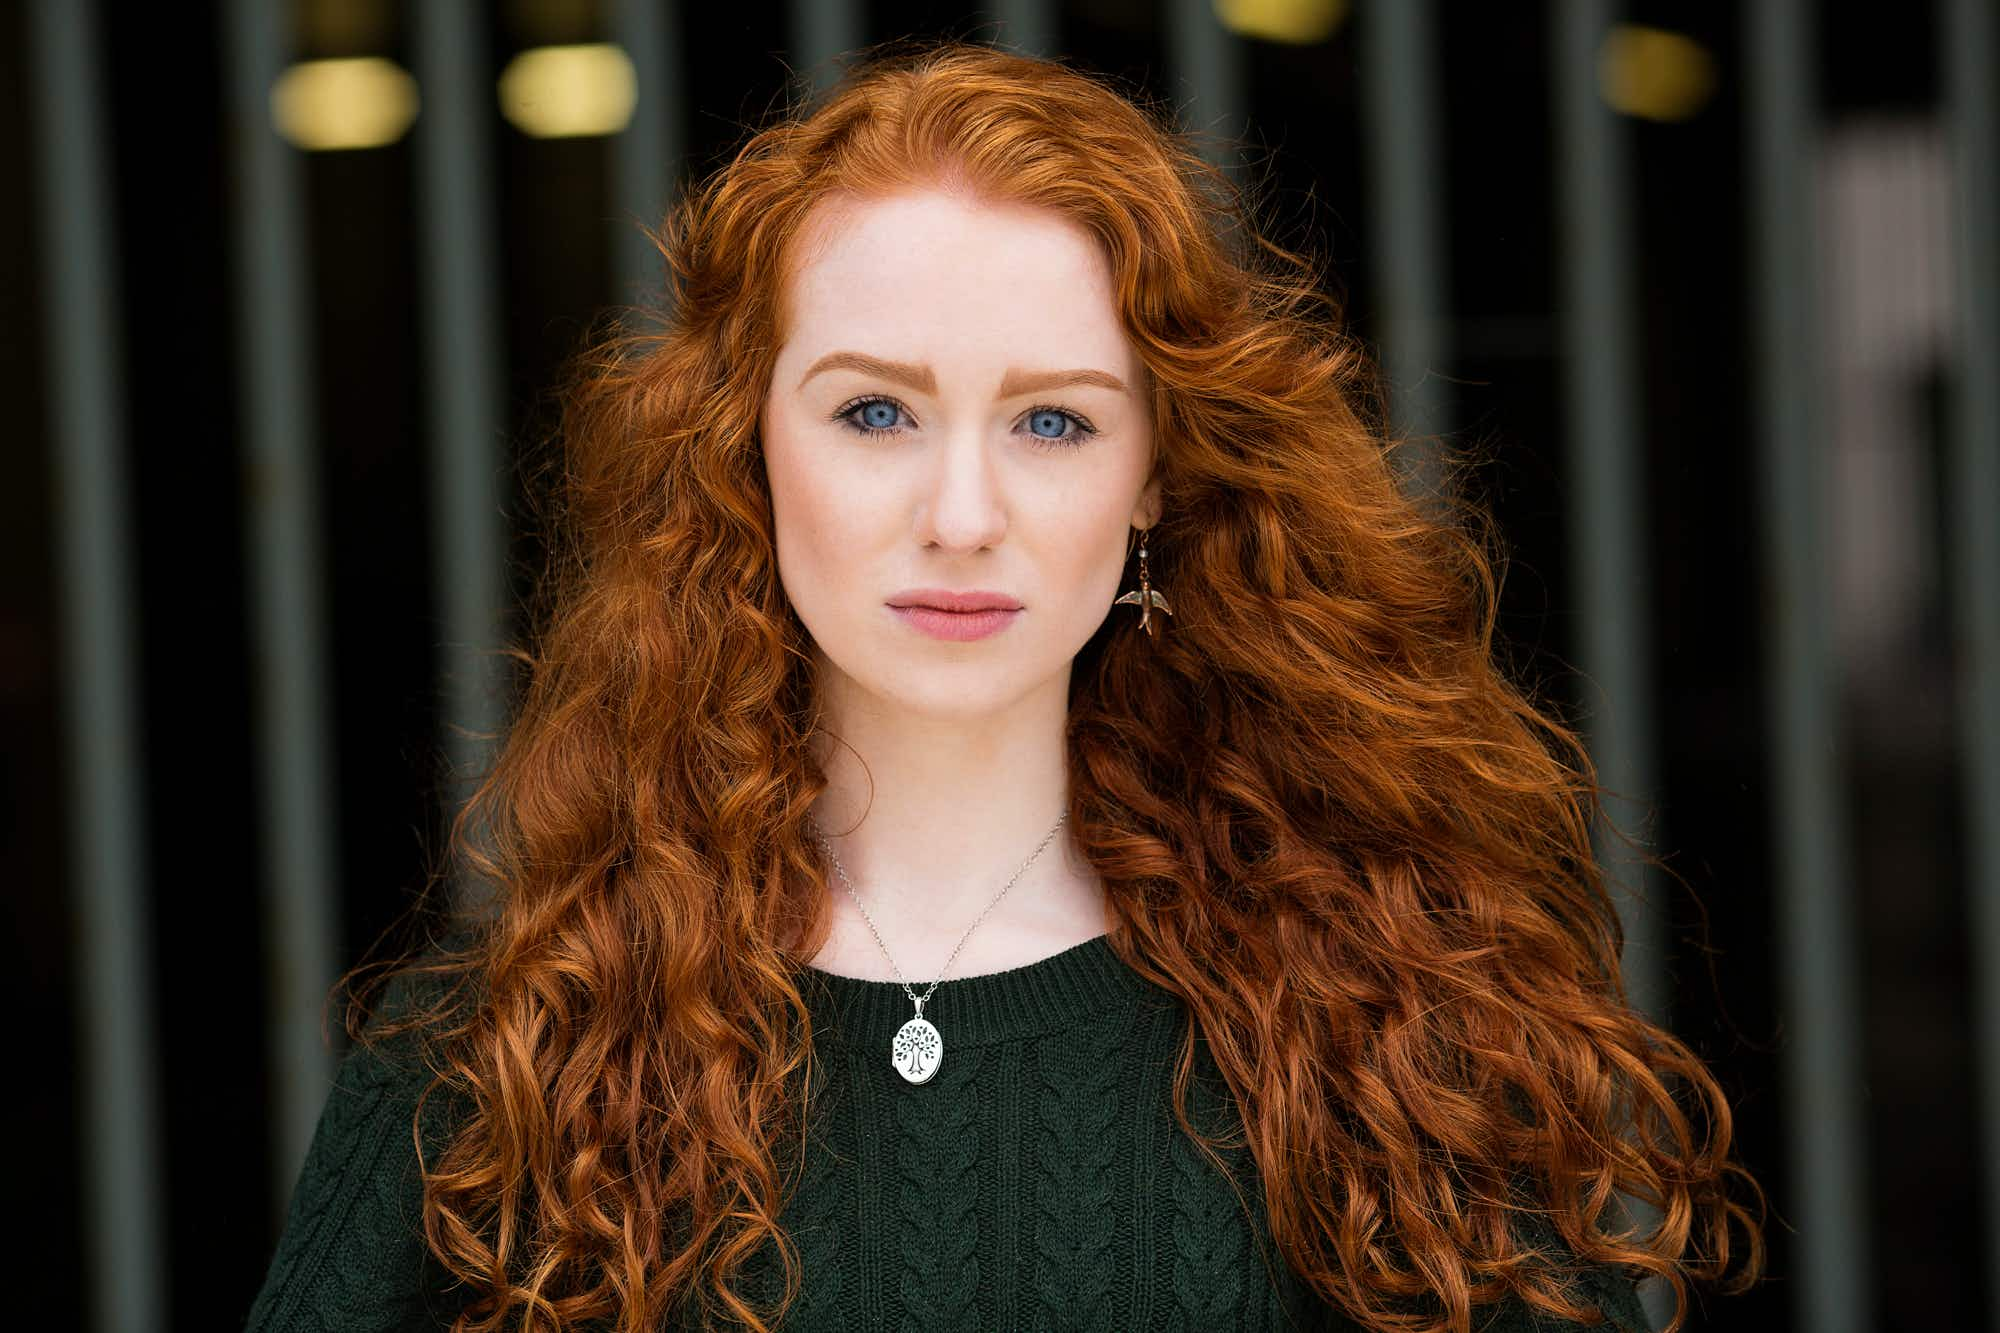 A photographer is documenting the beauty of redheads around the world